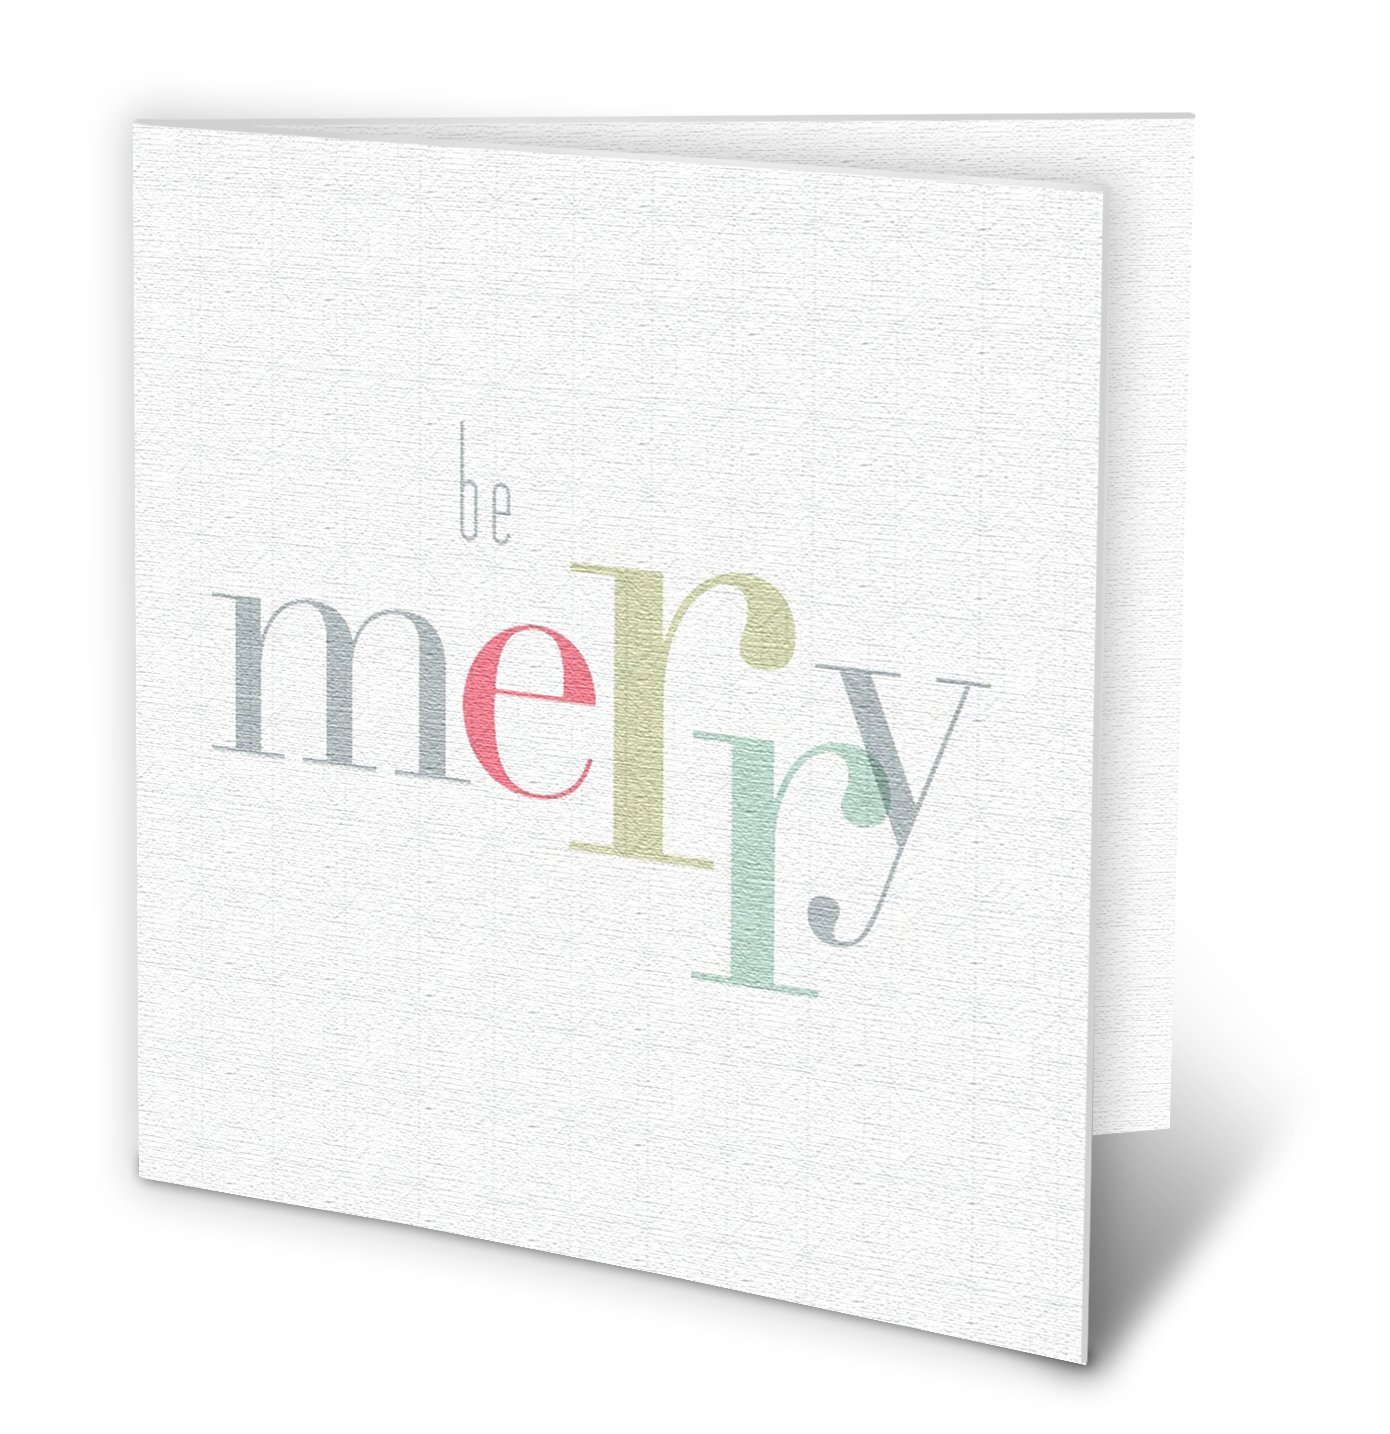 Cheap Holiday Season Cards Find Holiday Season Cards Deals On Line